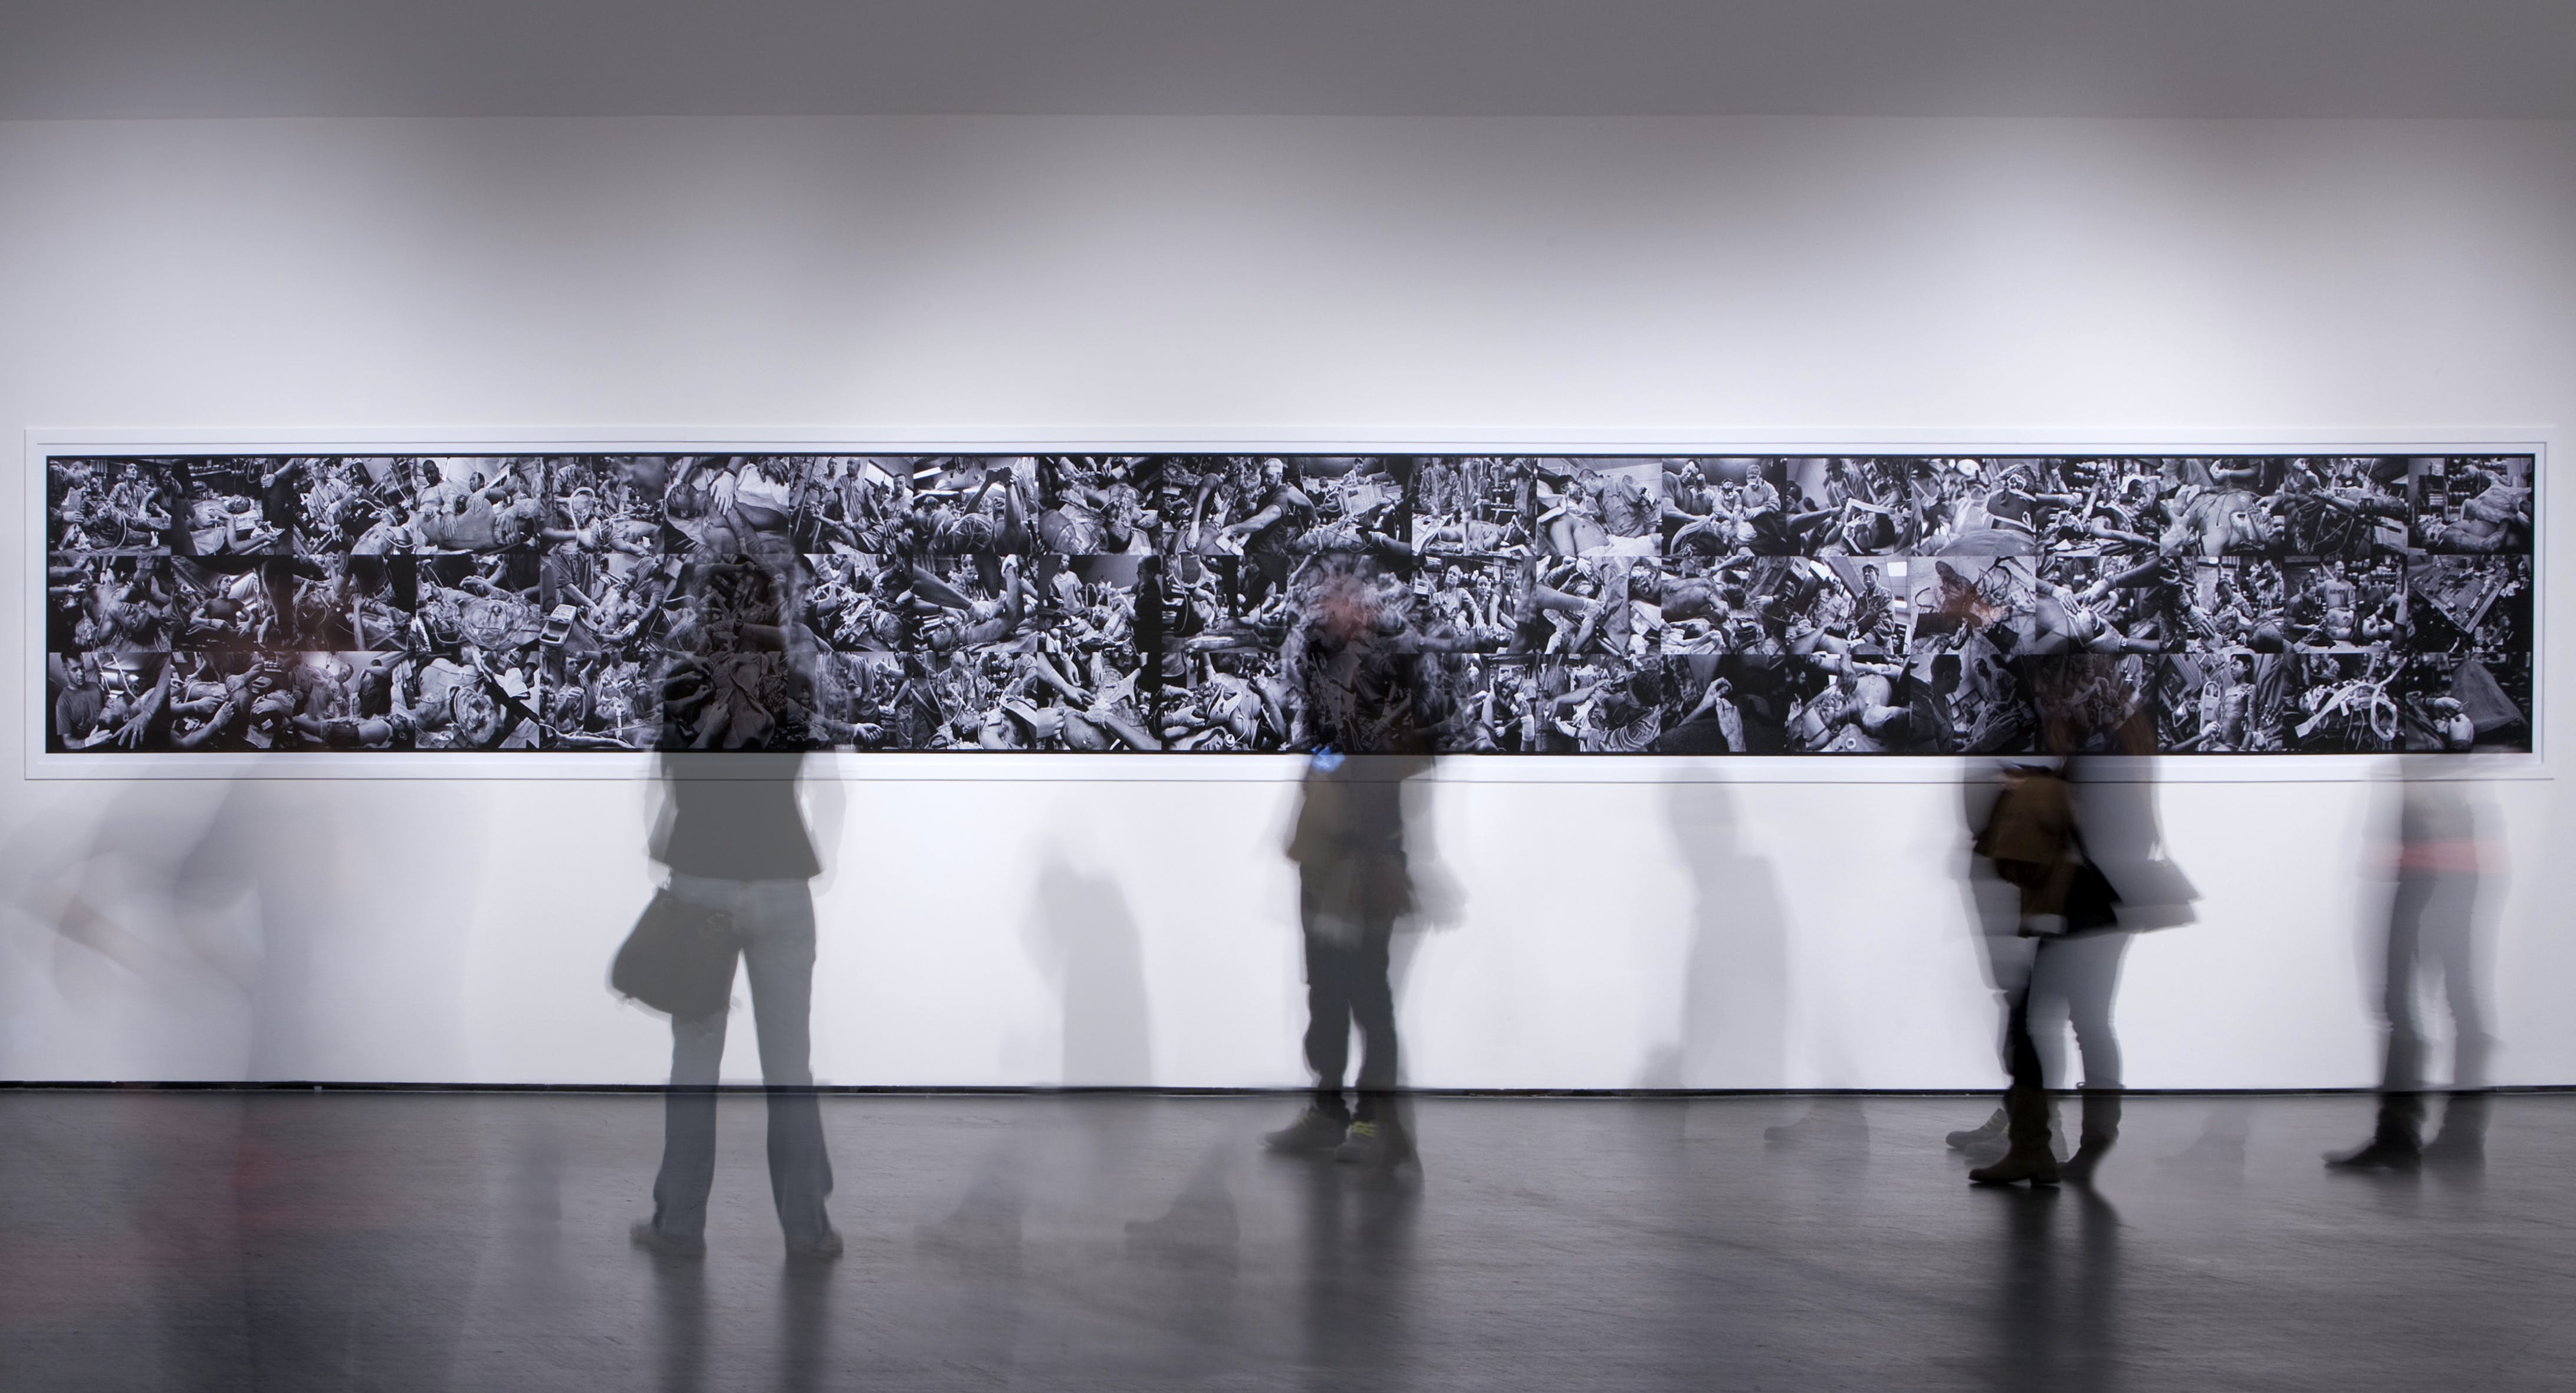 Disquieting images, curated by Germano Celant and Melissa Harris, 2010, Triennale Milano, photo by Fabrizio Marchesi